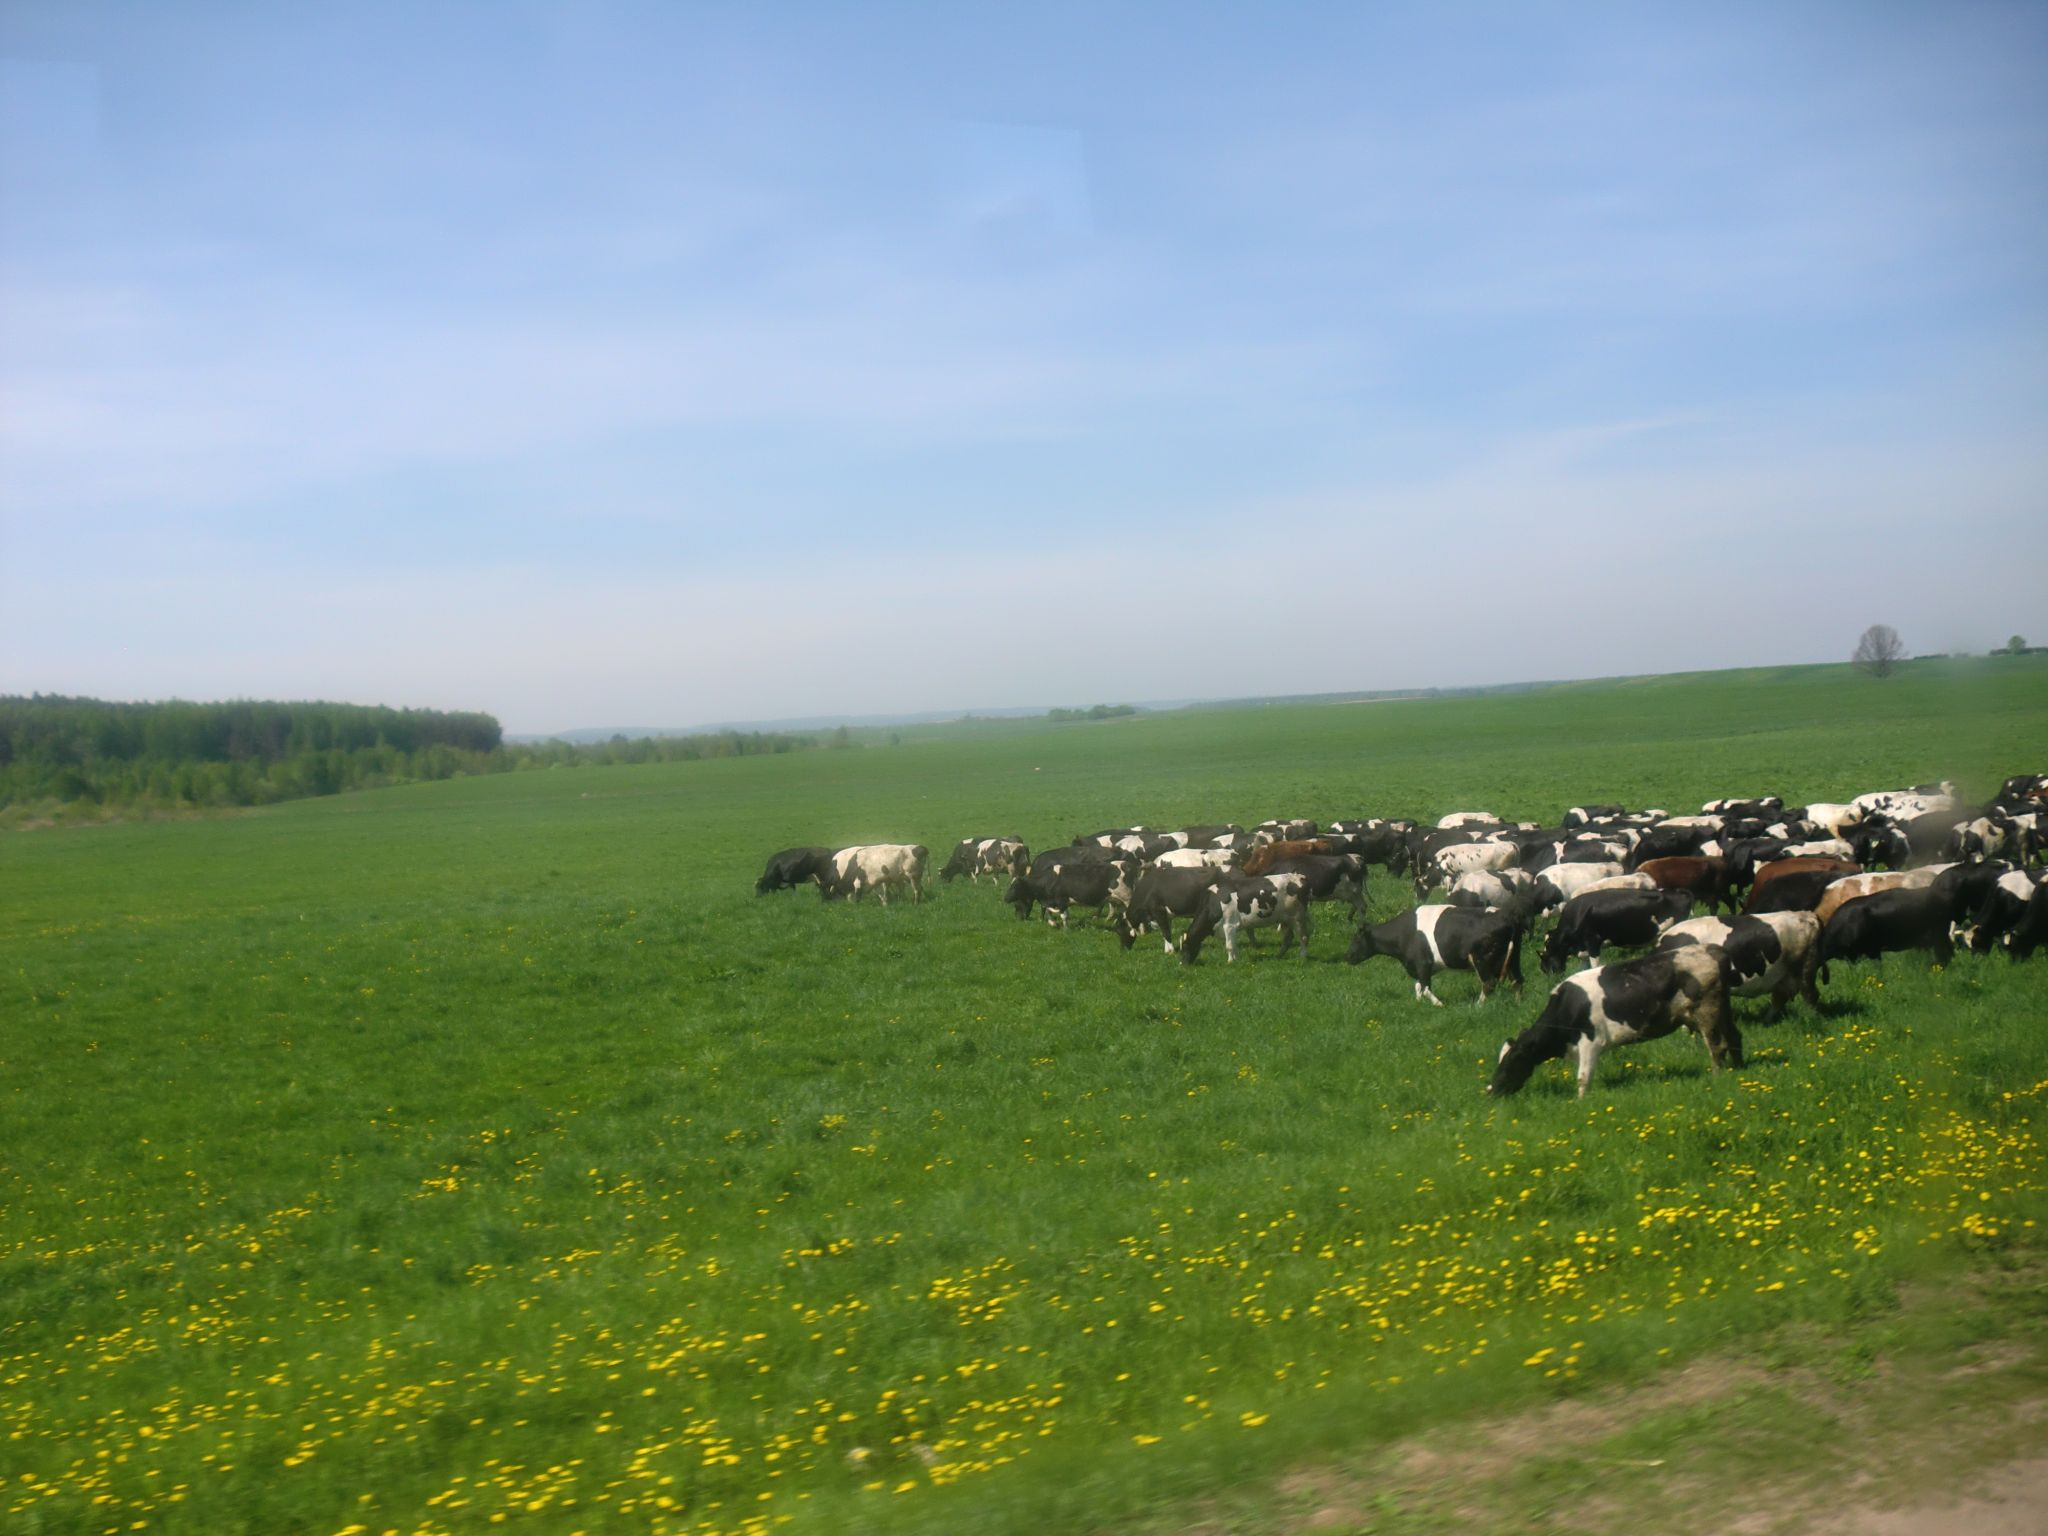 From Vilnius to Minsk by bus: 1 cool trip you should do - A herd of cows standing on top of a lush green field